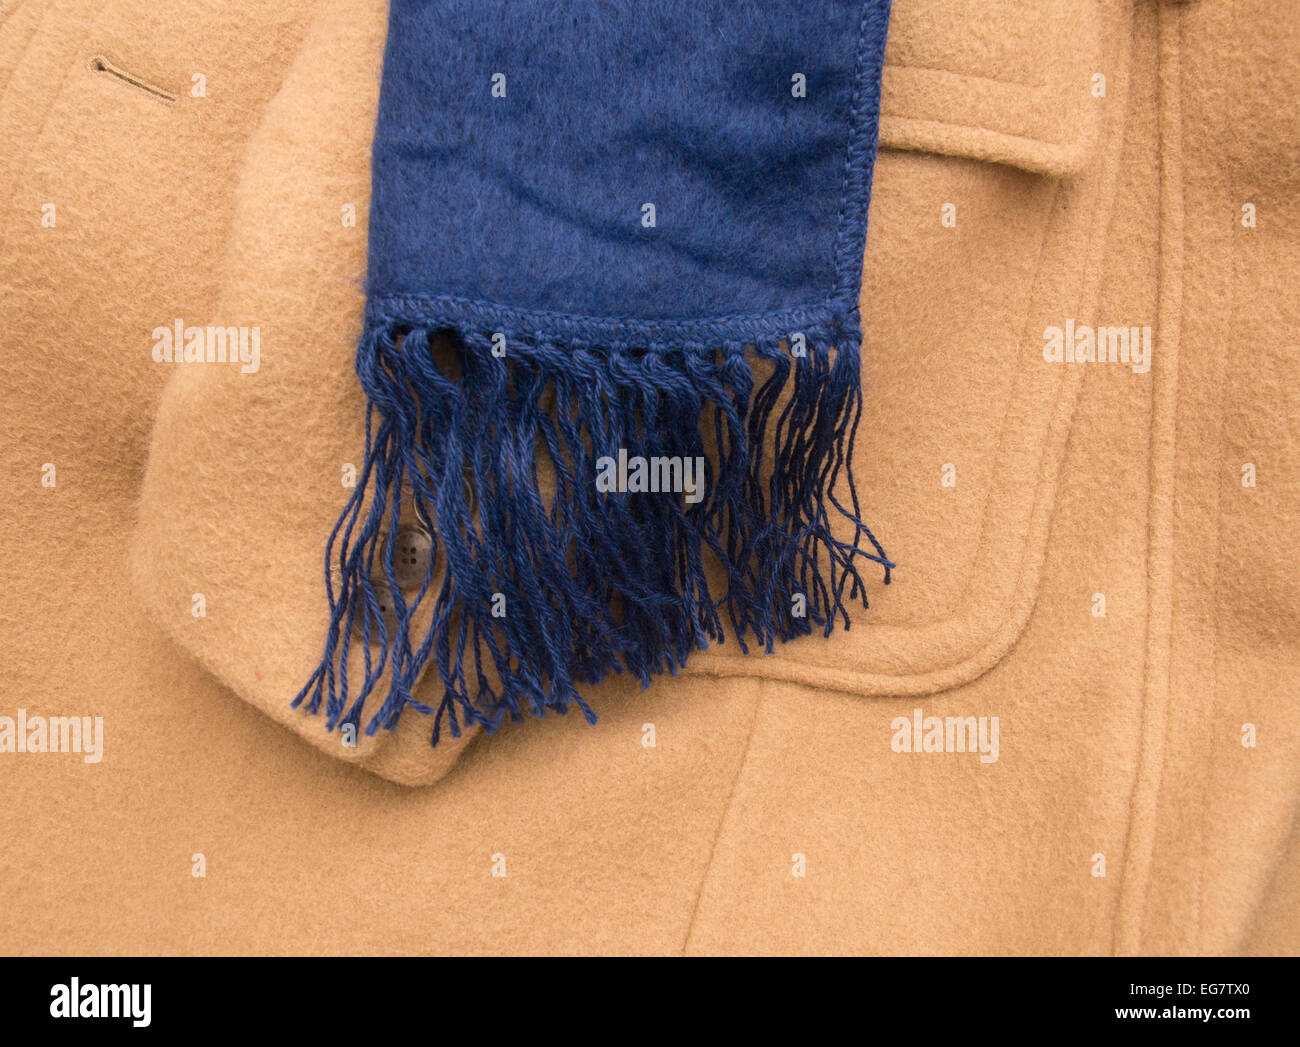 alpaca wool scarf with a formal brown coat - Stock Image